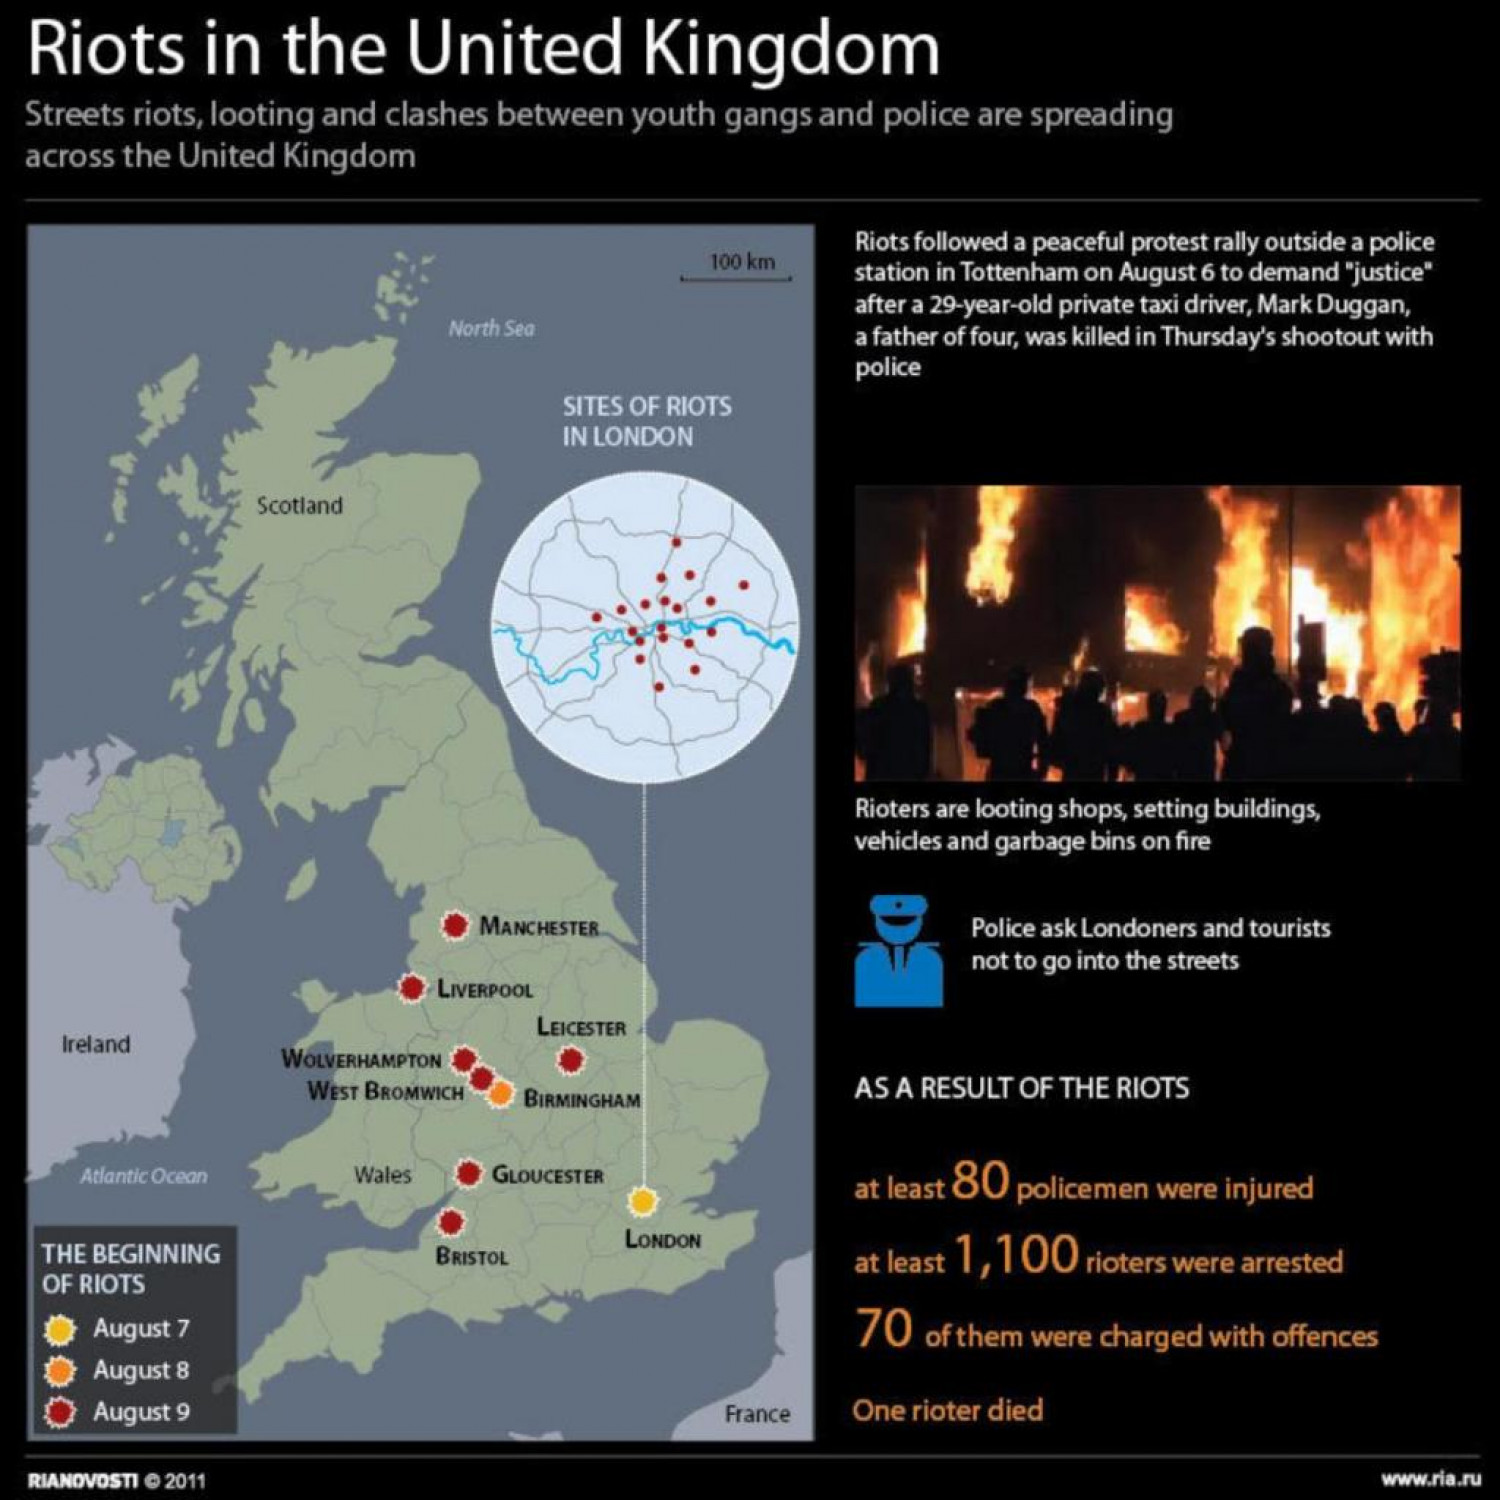 Riots in the United Kingdom Infographic